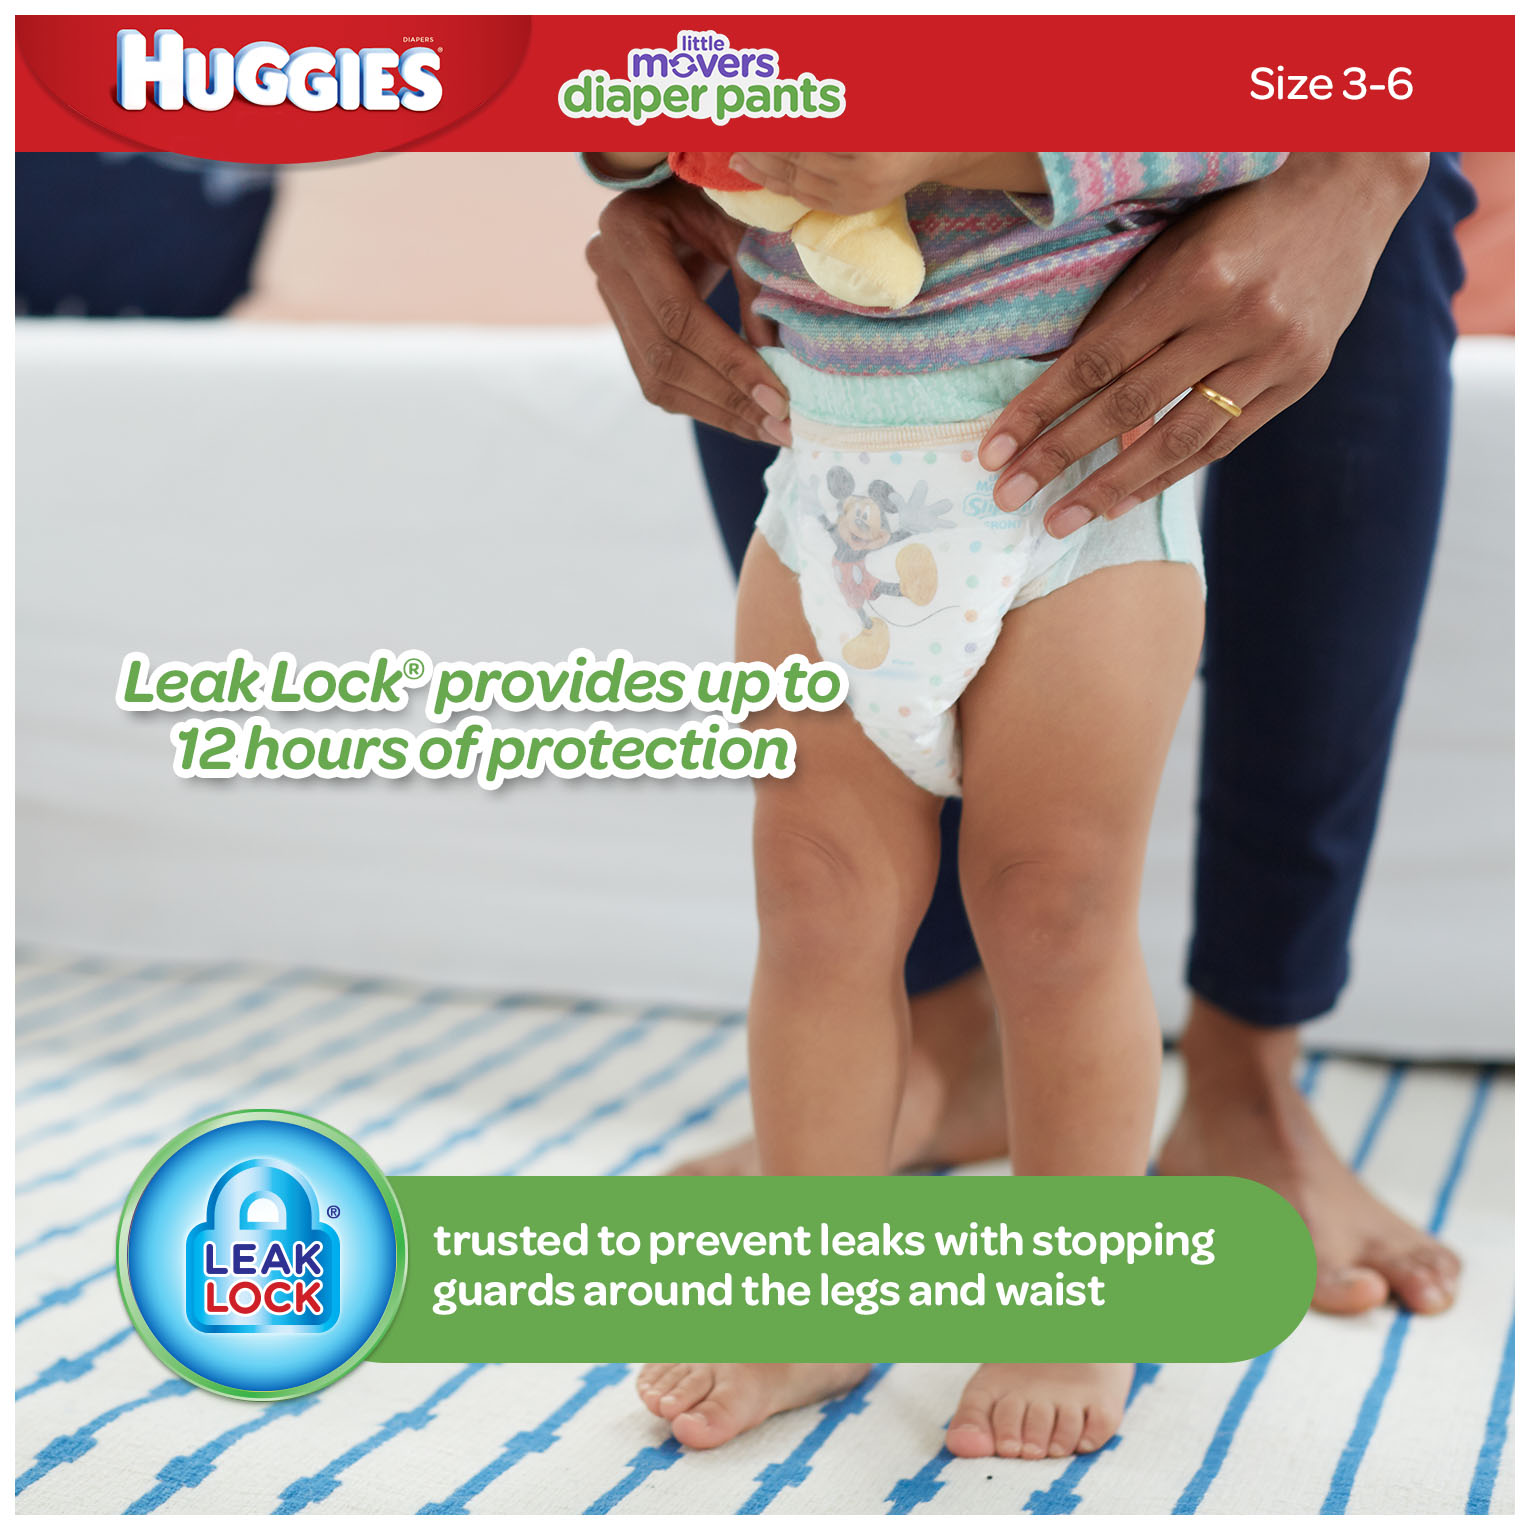 HUGGIES Little Movers Slip-On Diaper Pants, Size 3, 88 Diapers ...